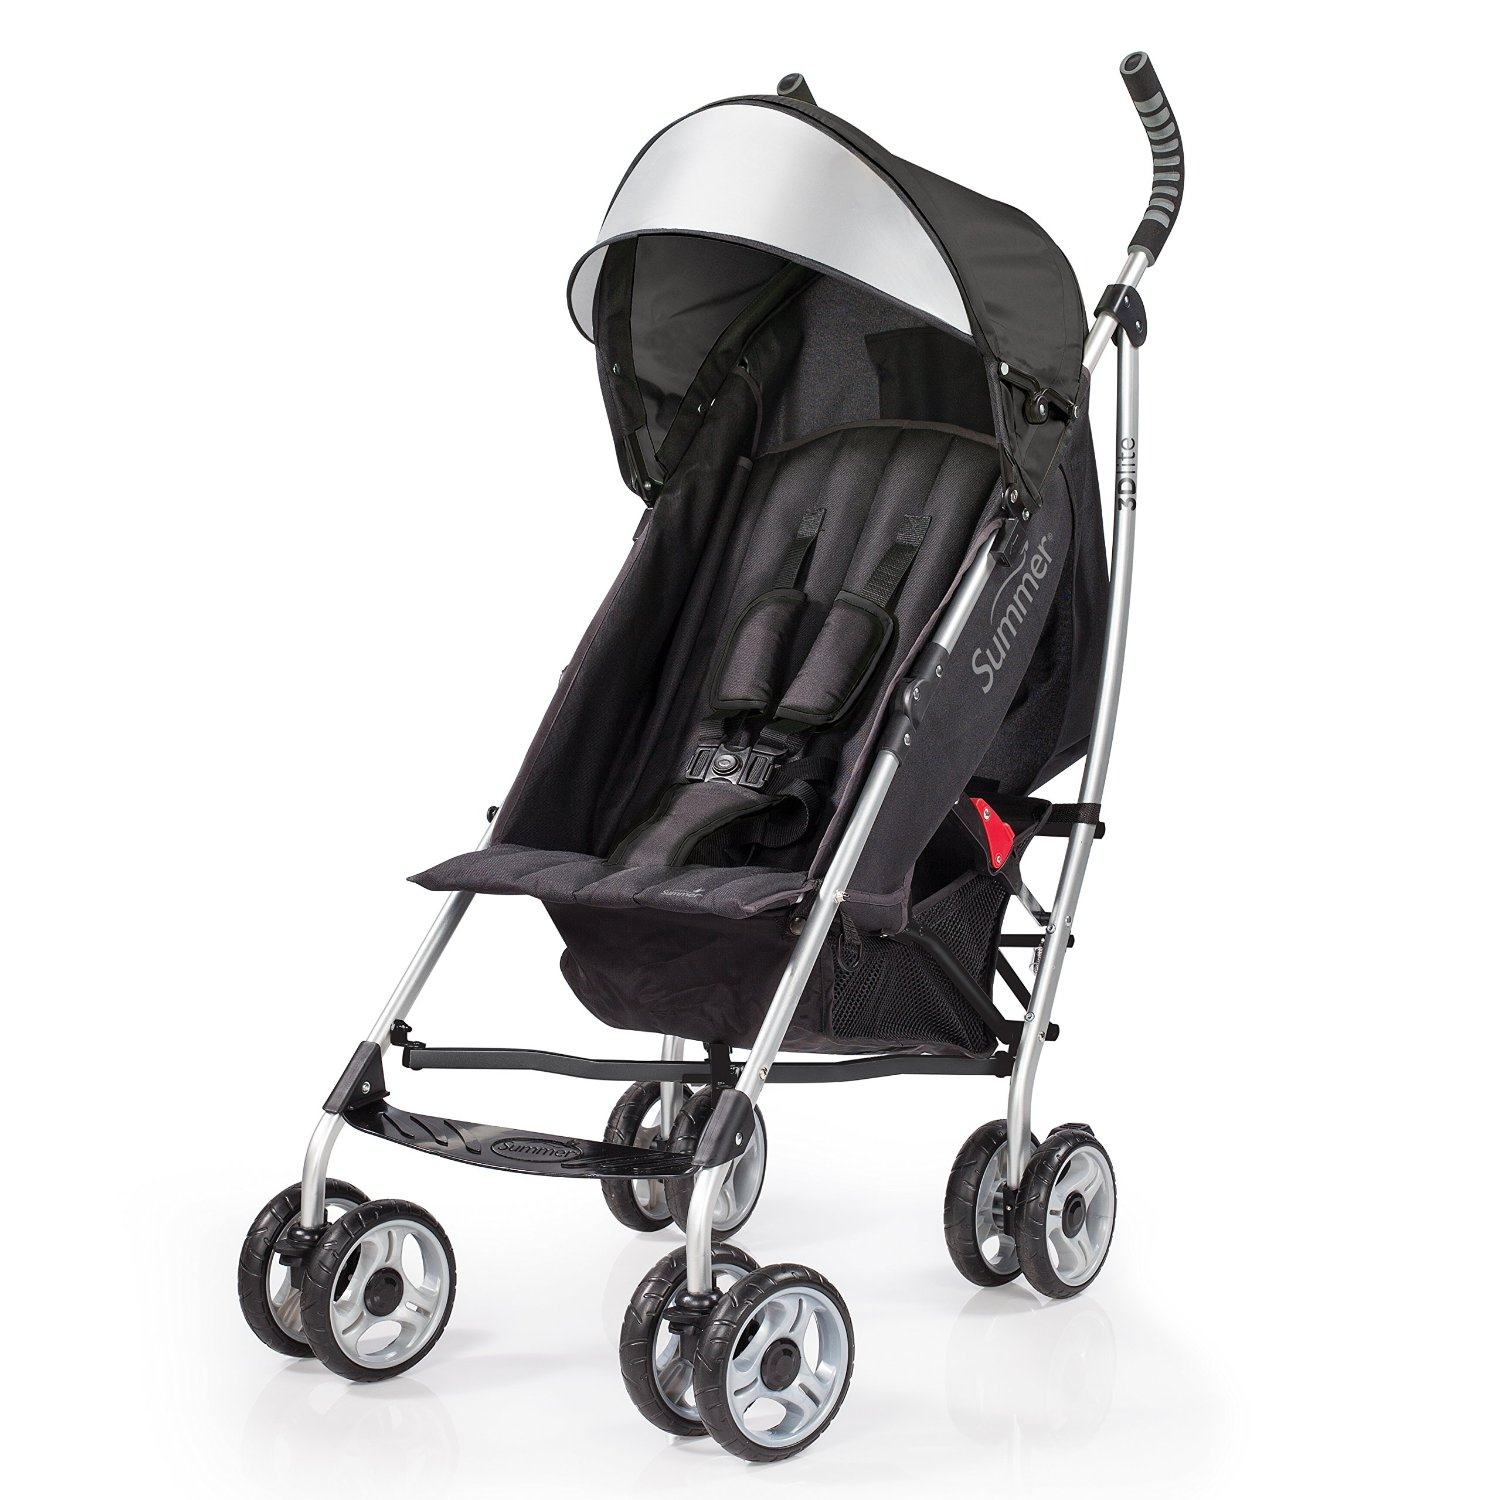 Best Lightweight Travel System Strollers 2018 Top 10 Best Baby Strollers 2018 Baby Strollers Reviews